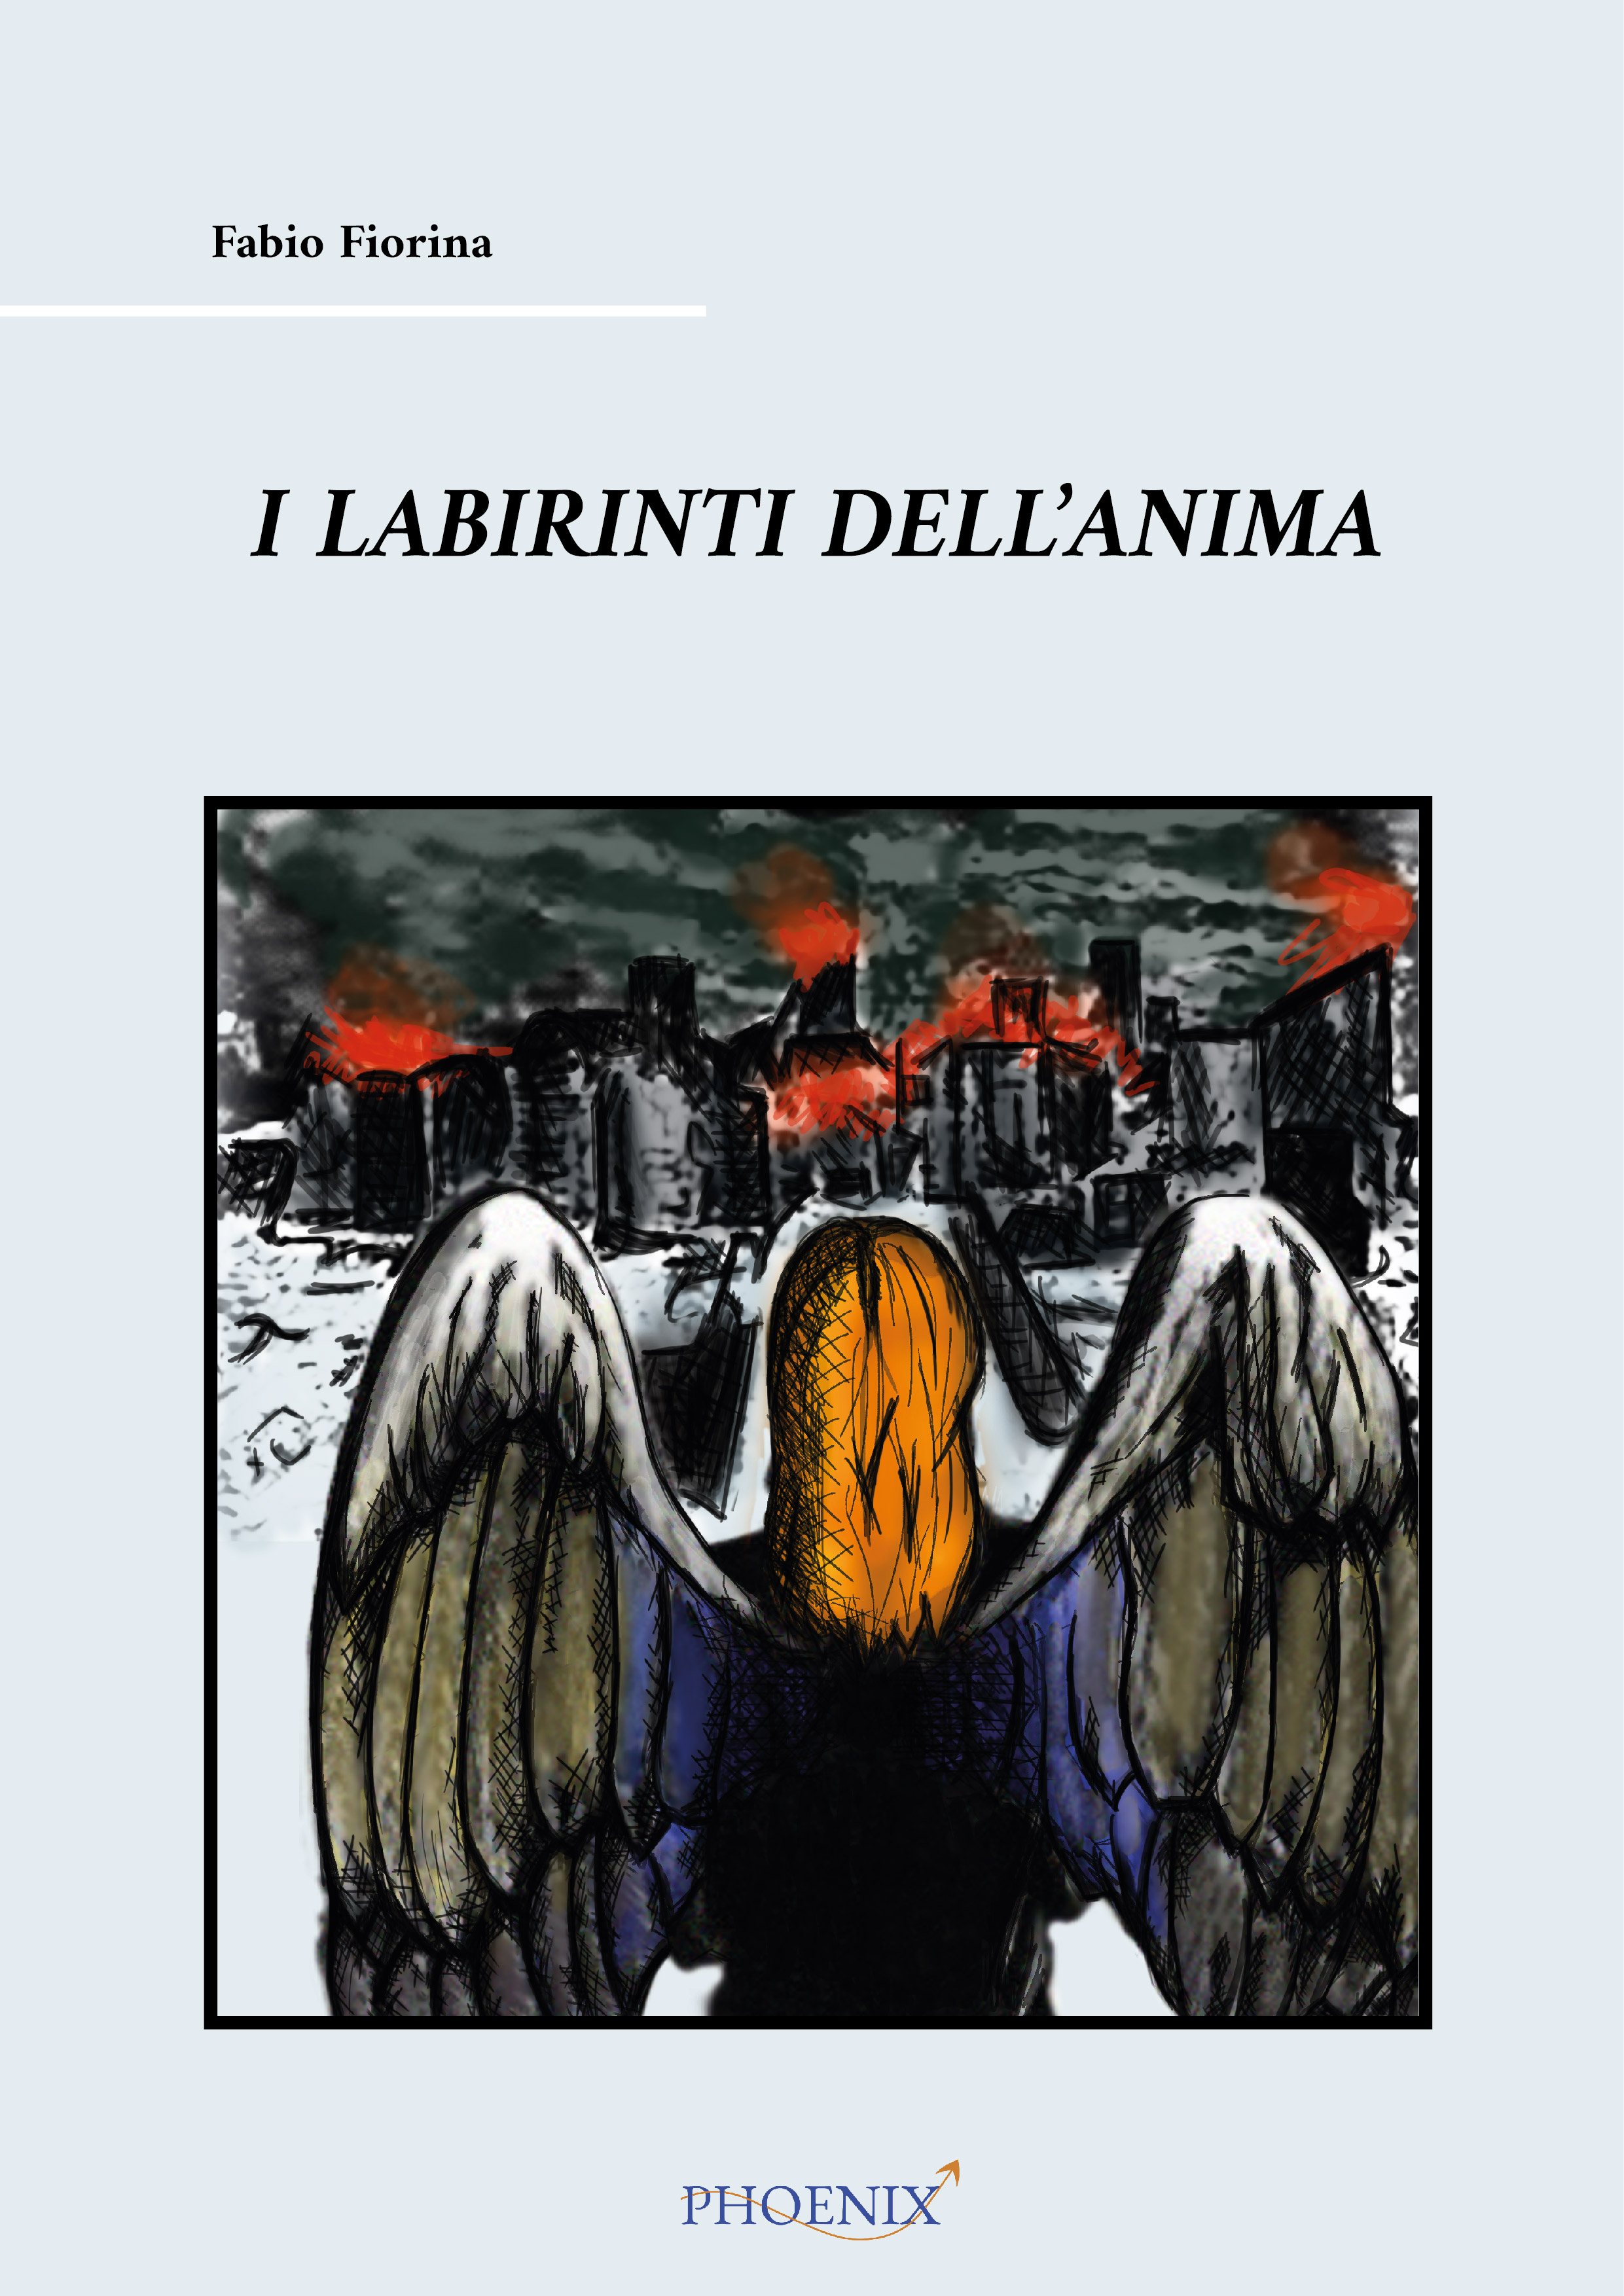 I labirinti dell'anima